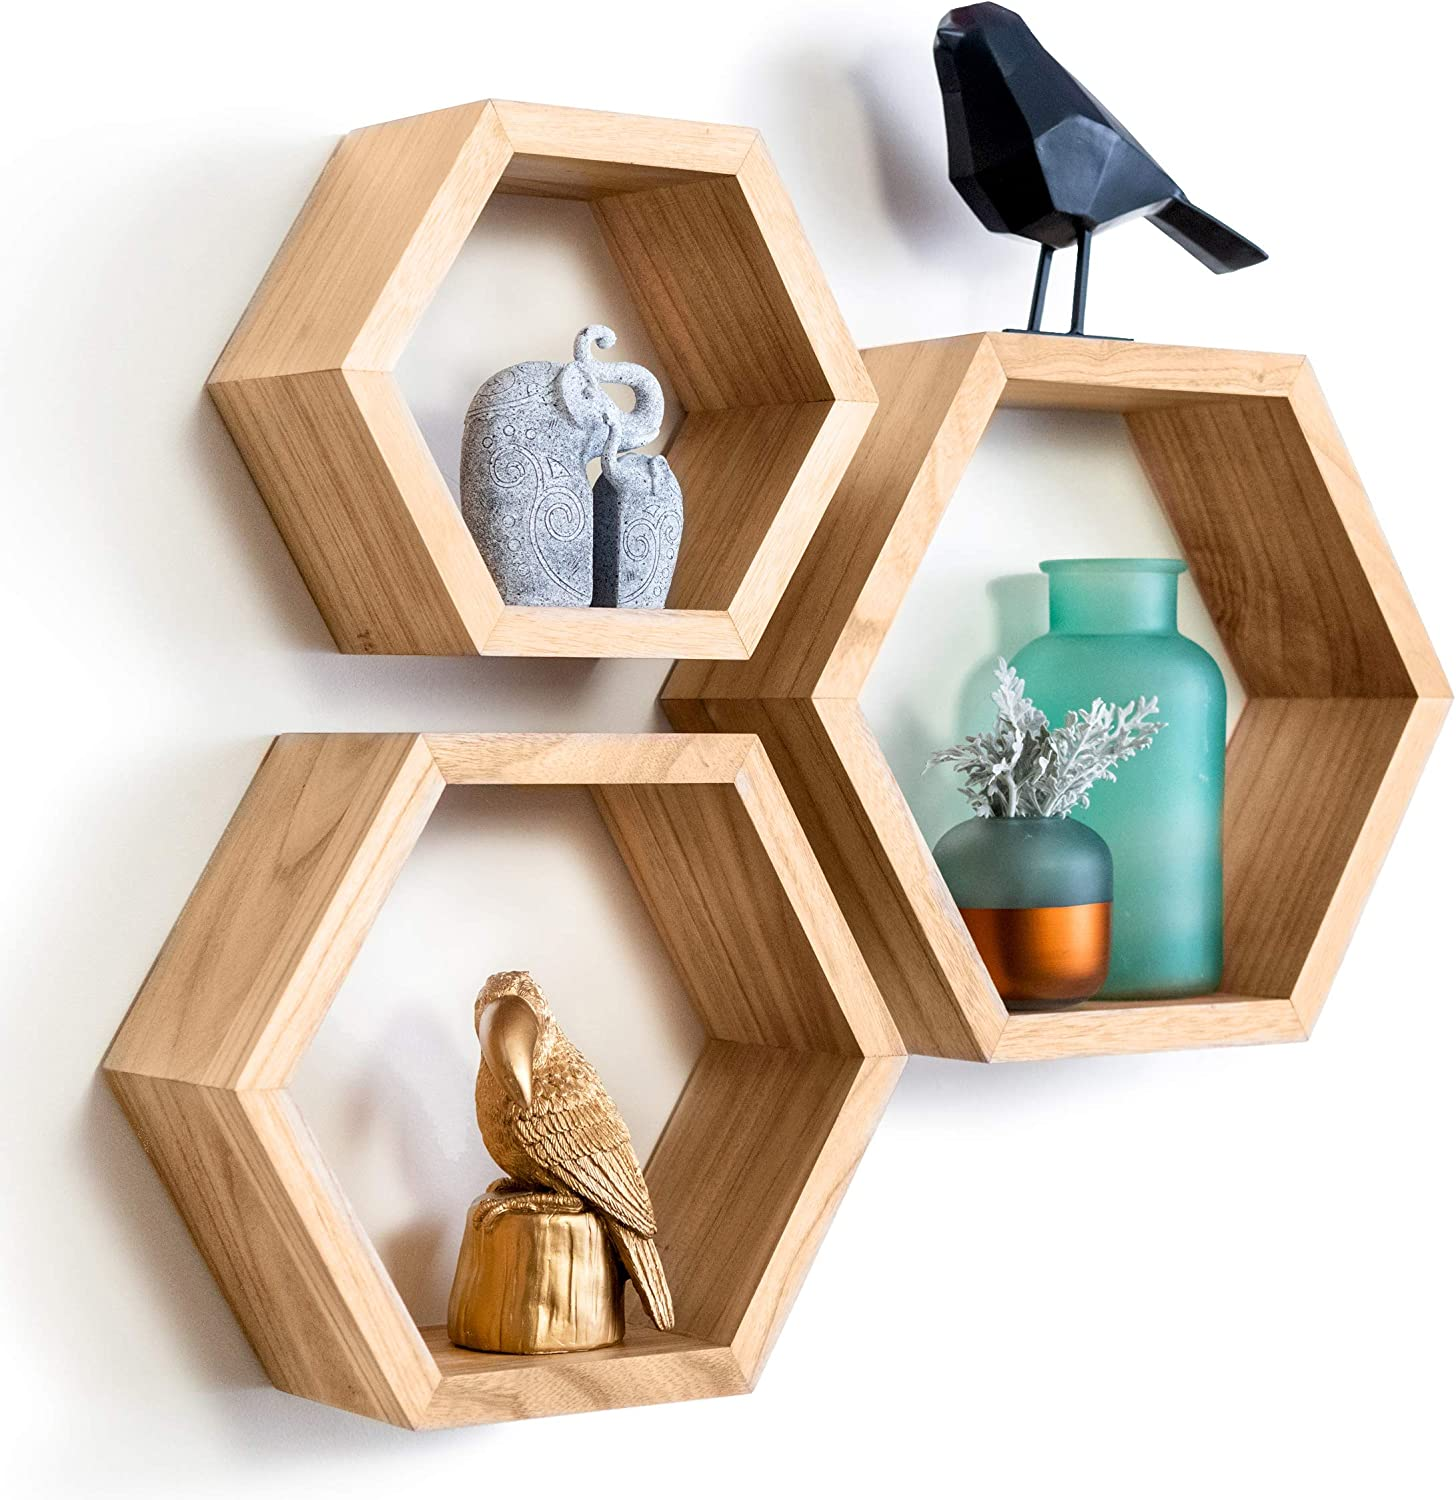 Hexagon Floating Shelves - Set of 3 - Beautiful Honeycomb Plant Wall Shelf. Geometric Hexagon Shelves. Includes All Hanging Hardware. Boho Shelves. Honeycomb Shelves